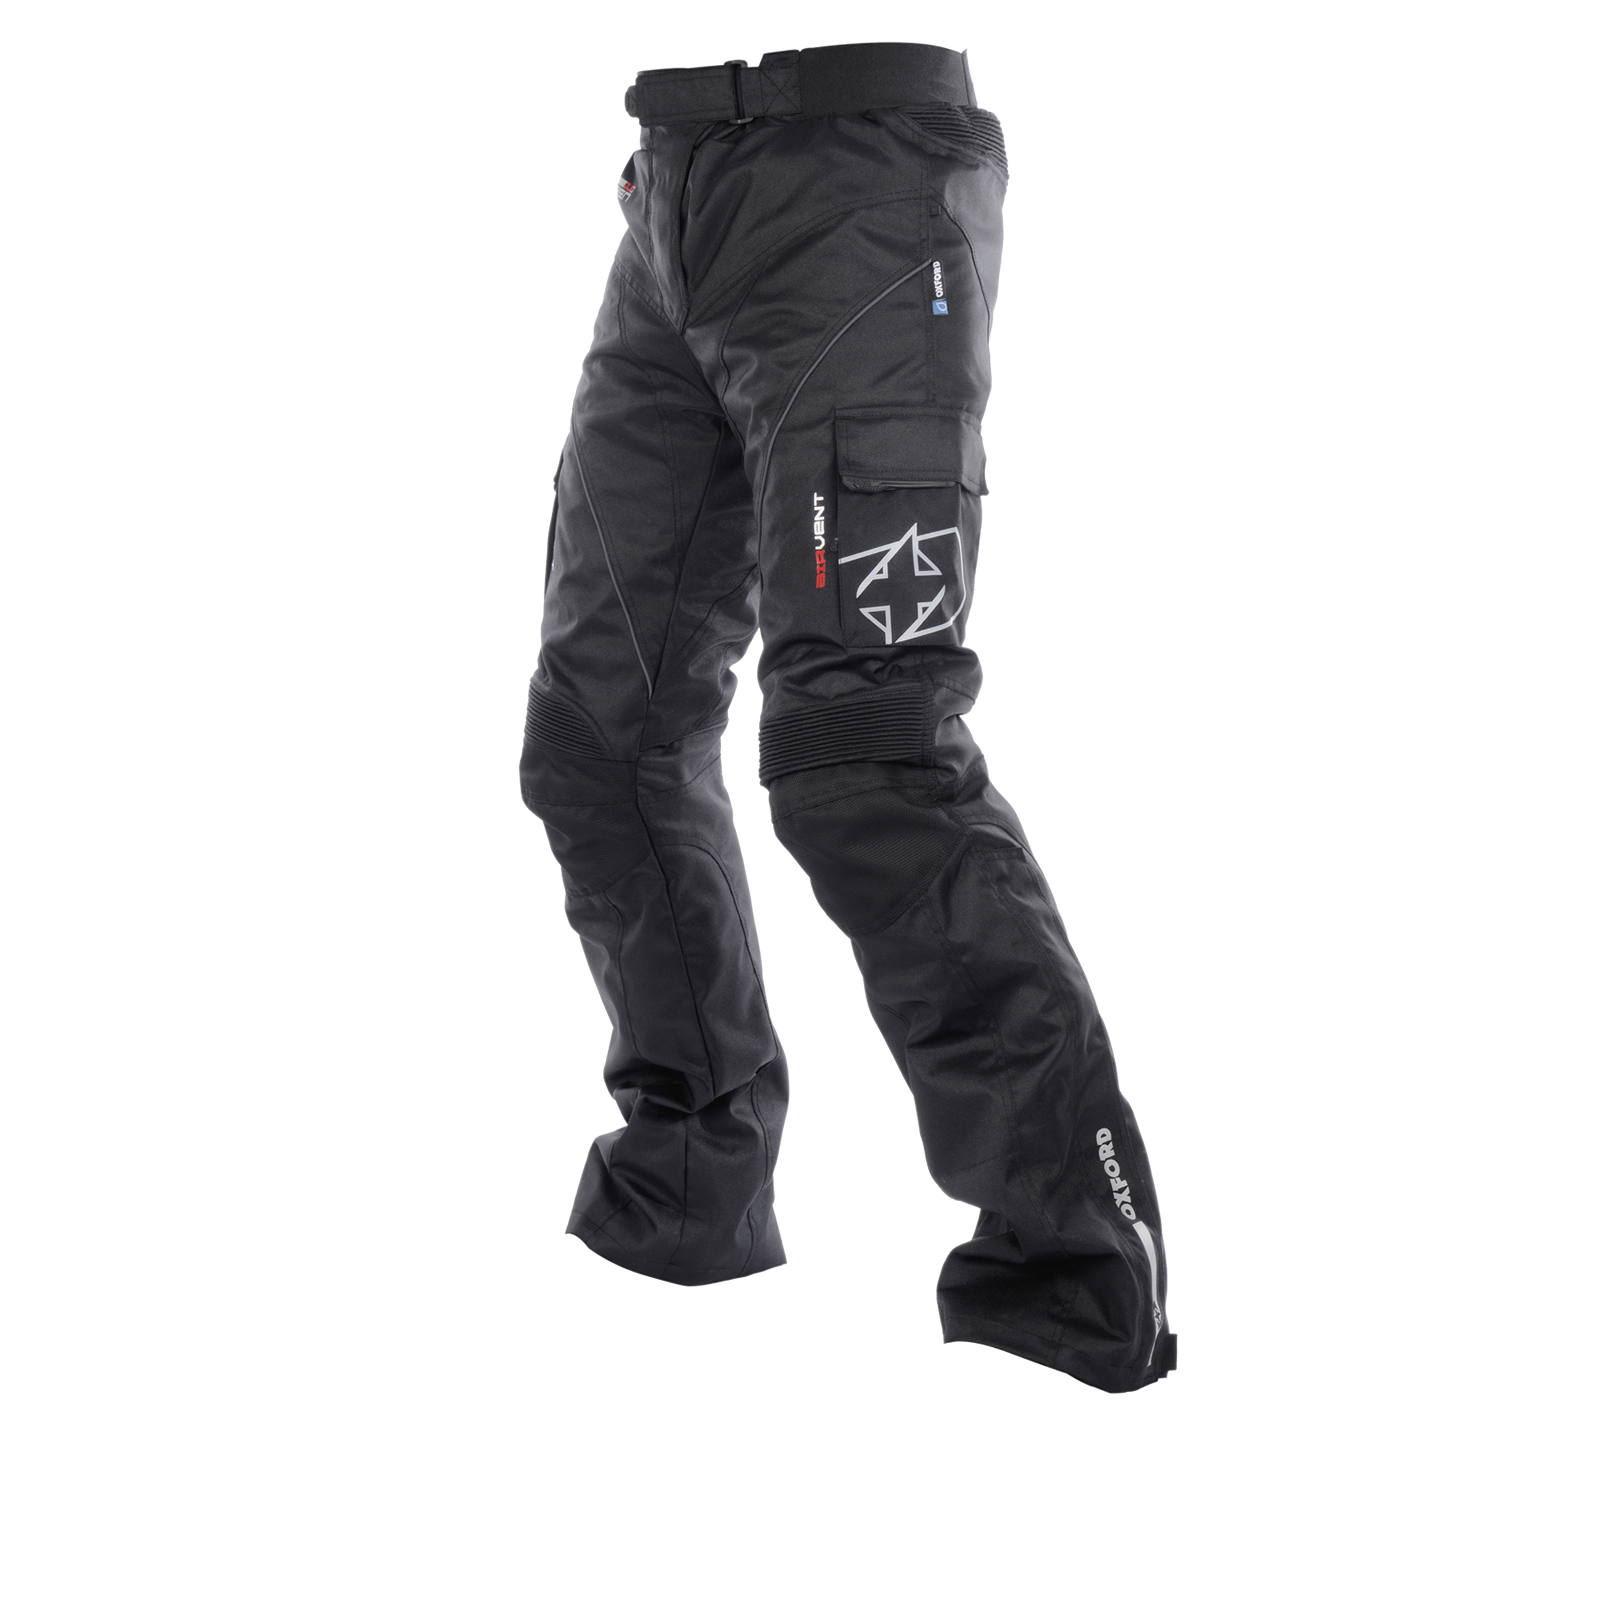 be690ad856a5b Motorcycle Trousers Ladies Uk